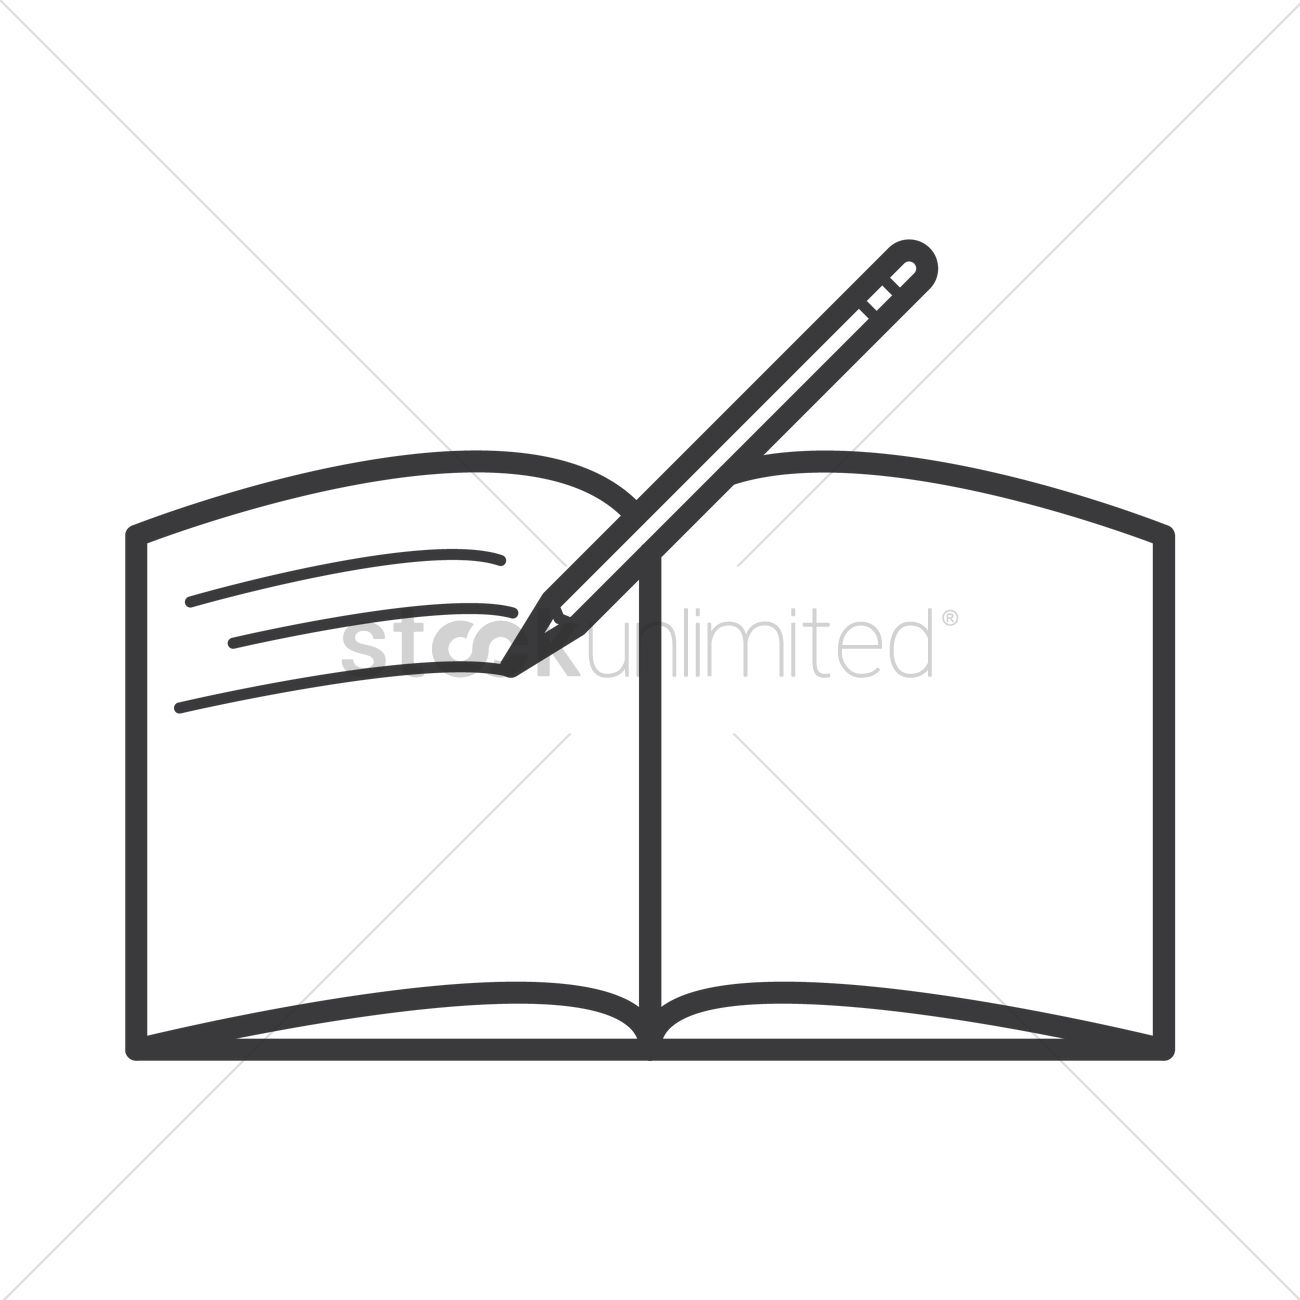 Open books with pen clipart banner freeuse stock Open book with pen icon Vector Image - 1577797 | StockUnlimited banner freeuse stock